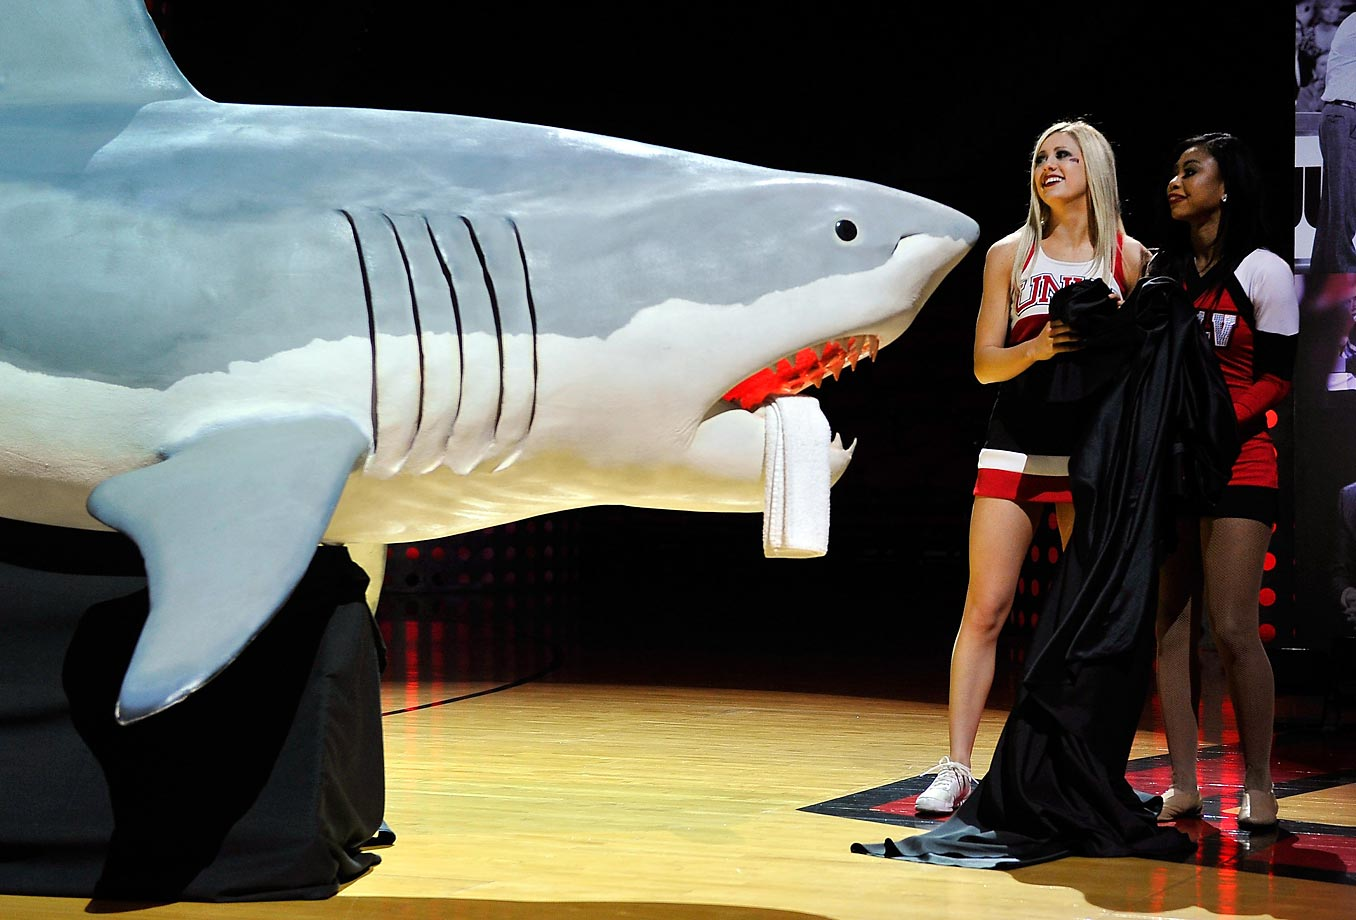 UNLV cheerleaders unveil a life-size shark during a tribute to former coach Jerry Tarkanian.